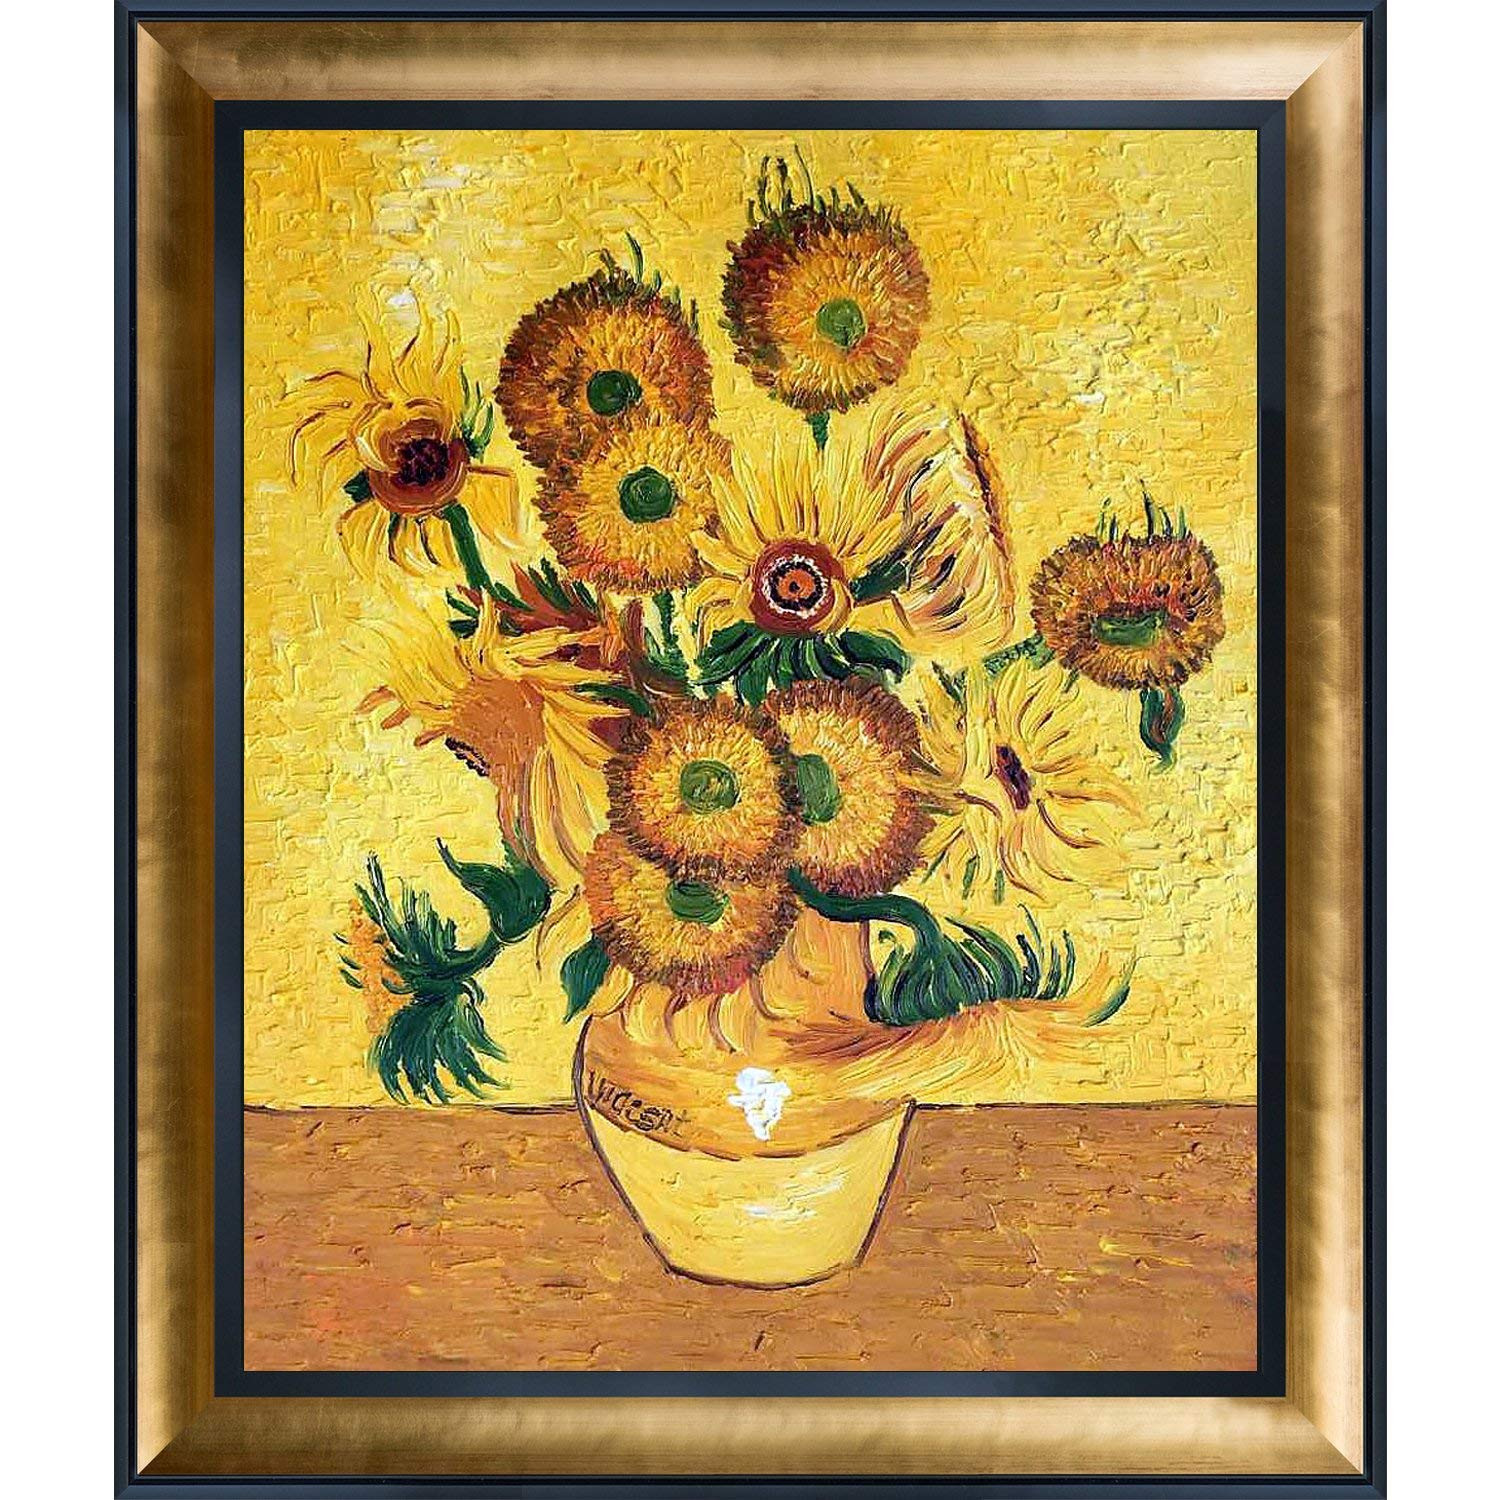 vase with fifteen sunflowers of amazon com overstockart vase with fifteen sunflowers artwork by with amazon com overstockart vase with fifteen sunflowers artwork by vincent van gogh with gold luminoso and black combo frame posters prints